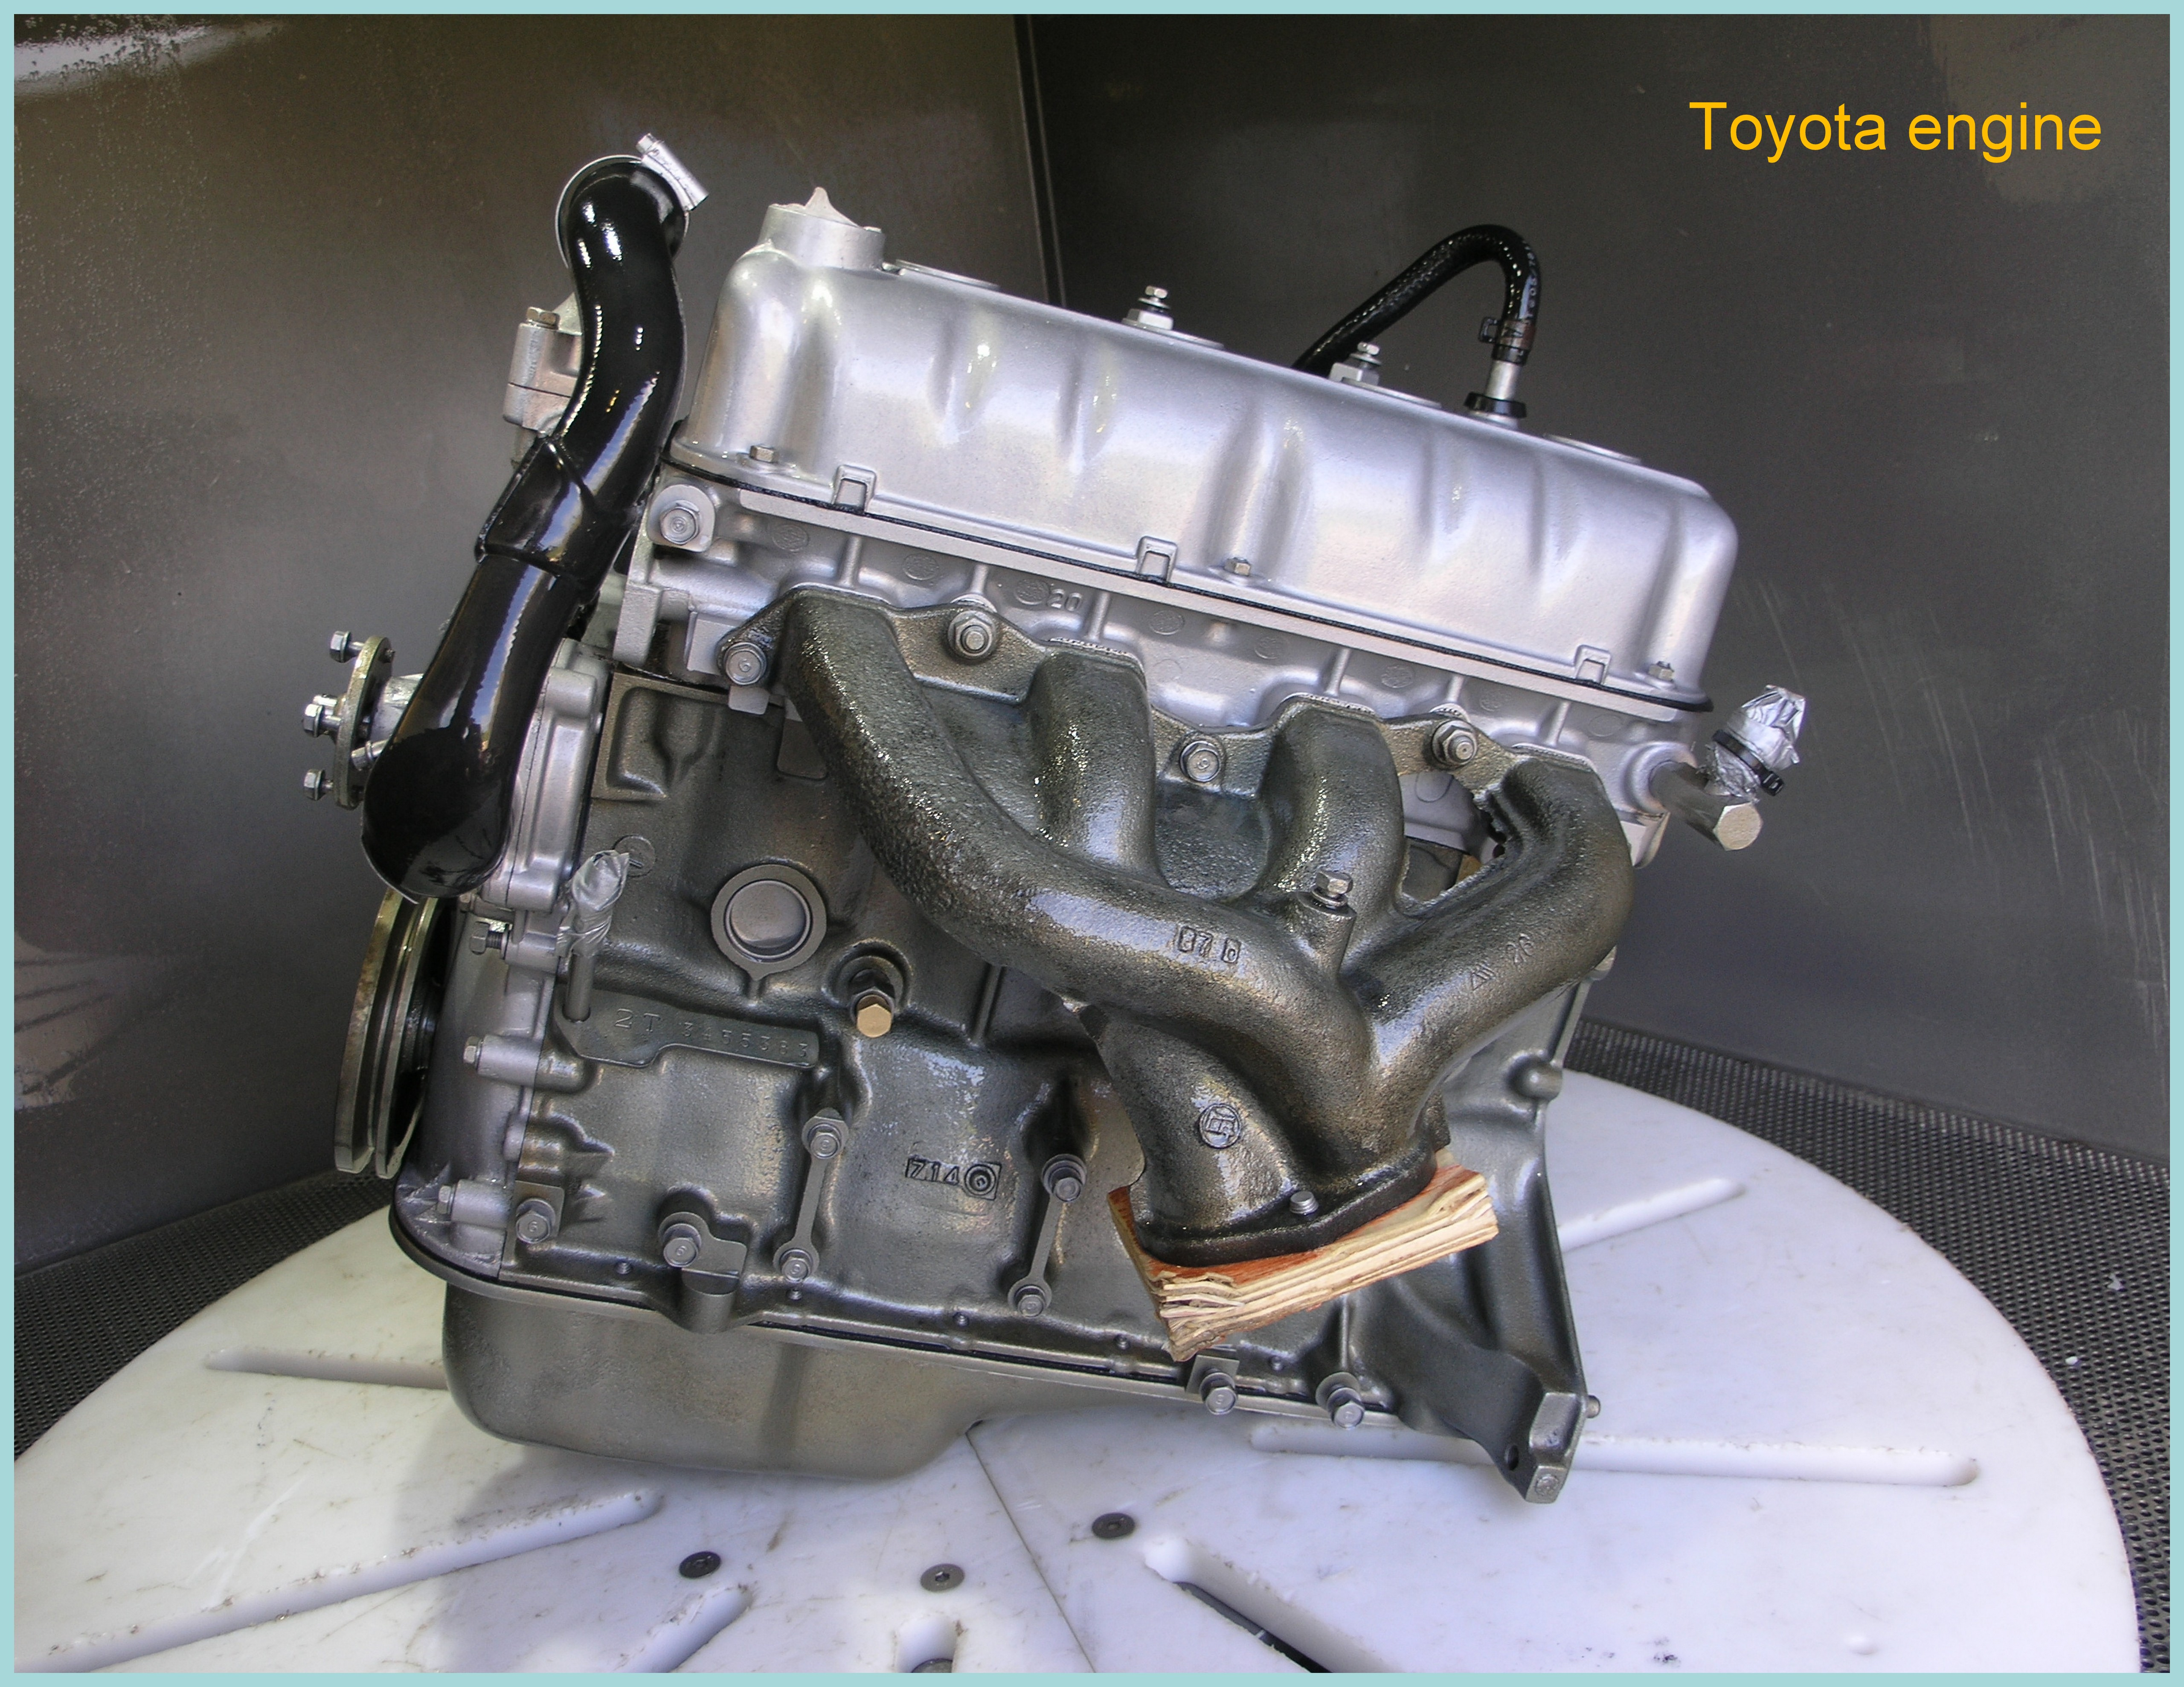 Toyota engine